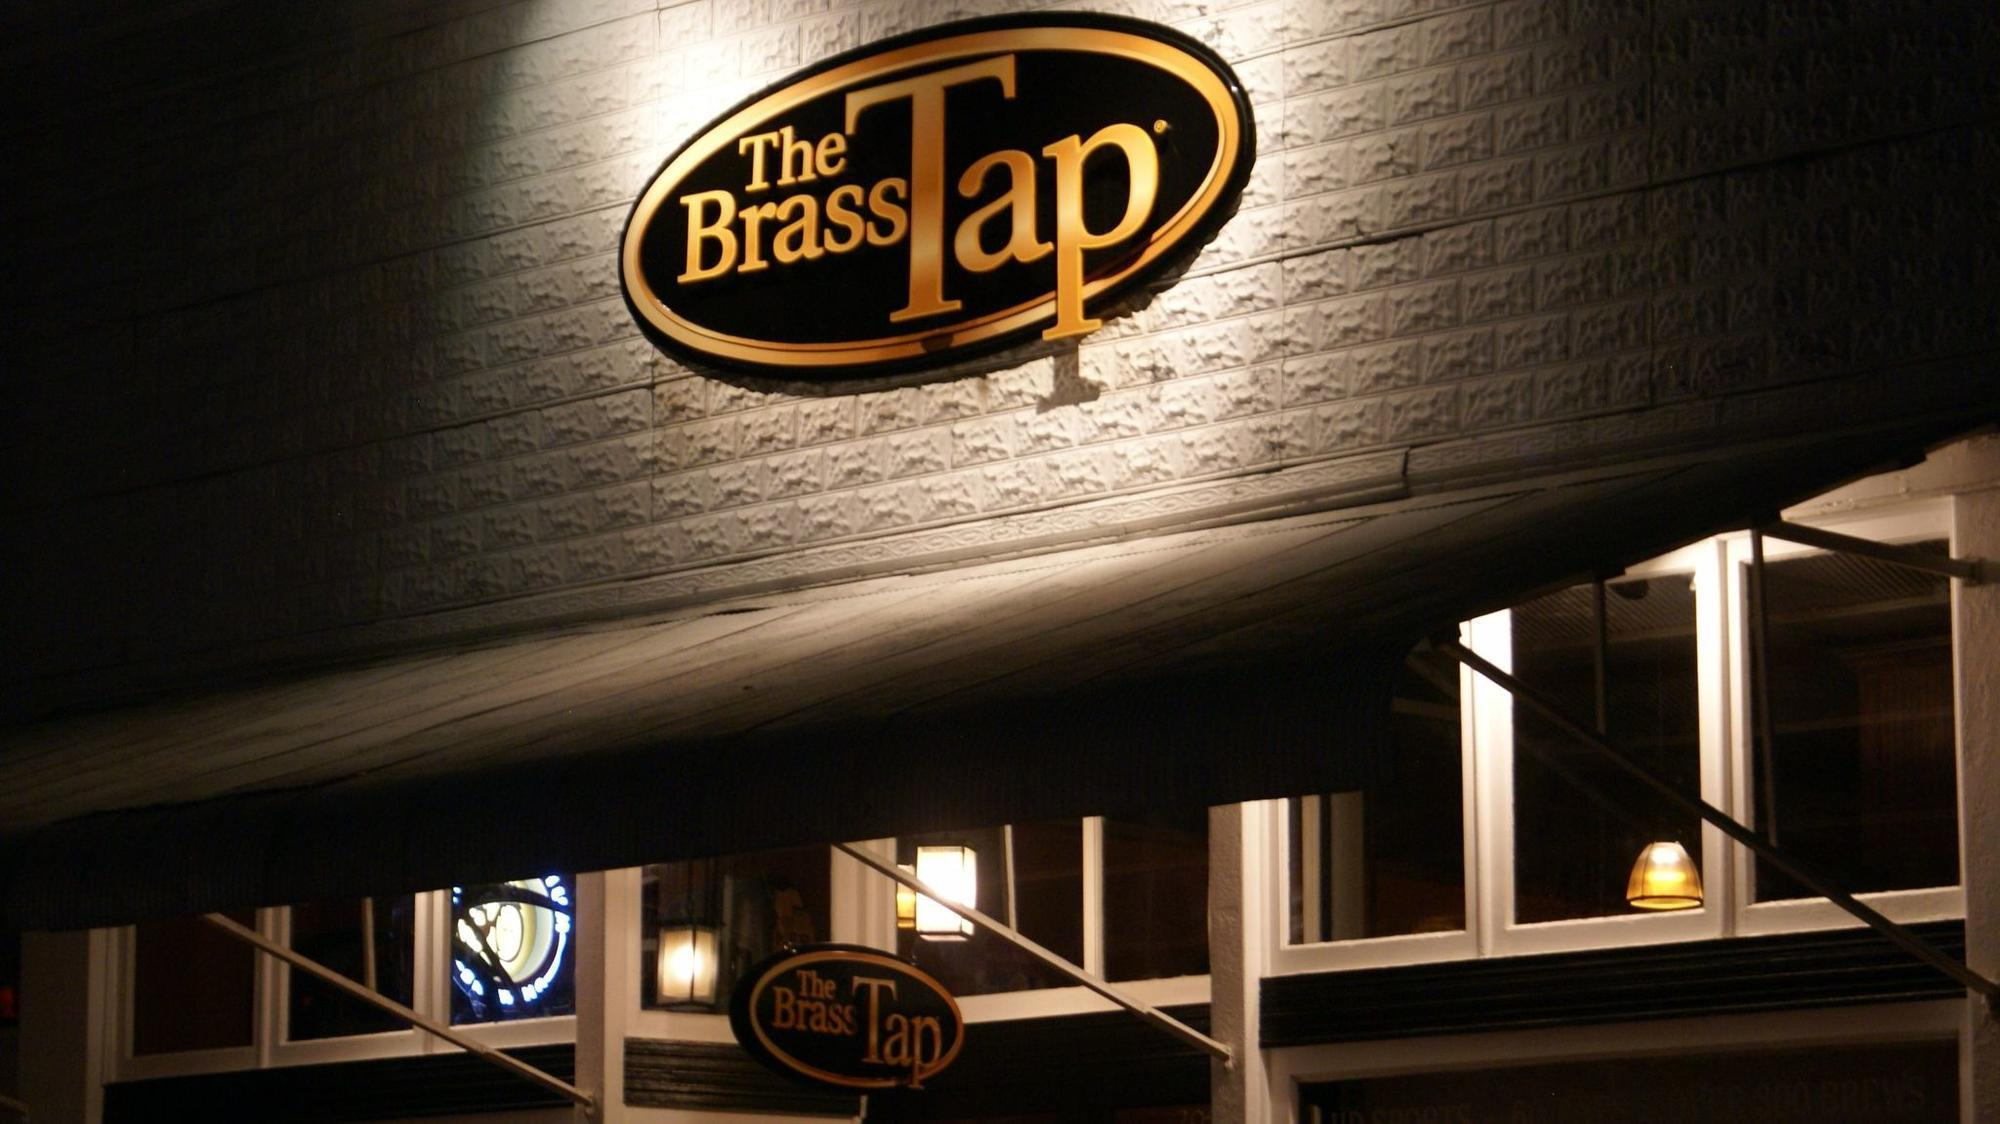 Craftbeer bar chain the Brass Tap to open in Towson early